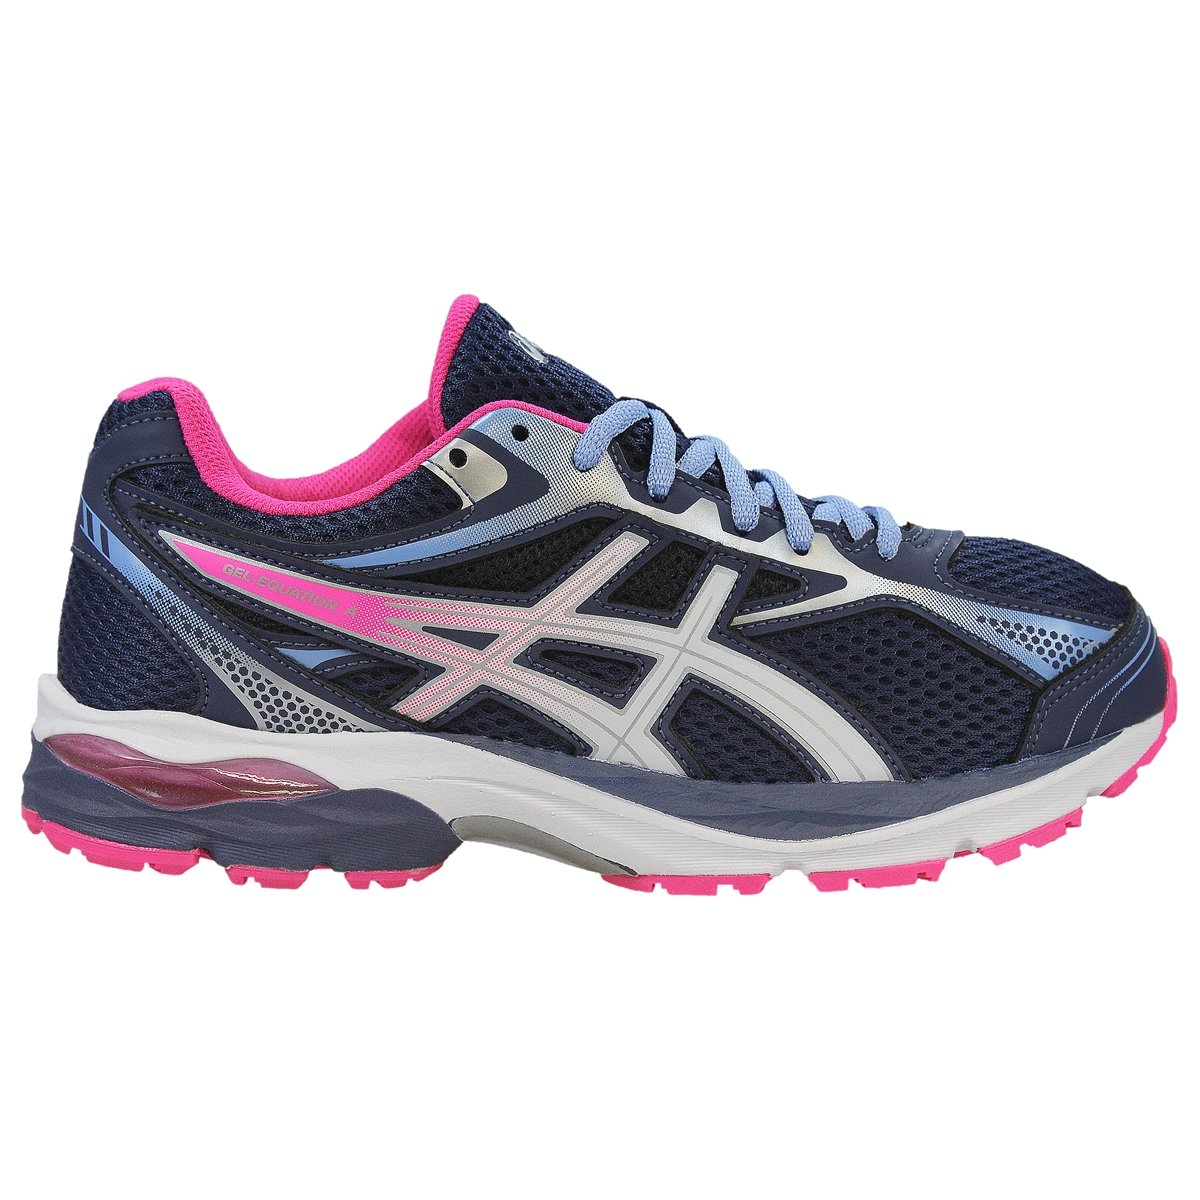 ea28e551b70 TÊNIS ASICS GEL EQUATION 9A FEMININO